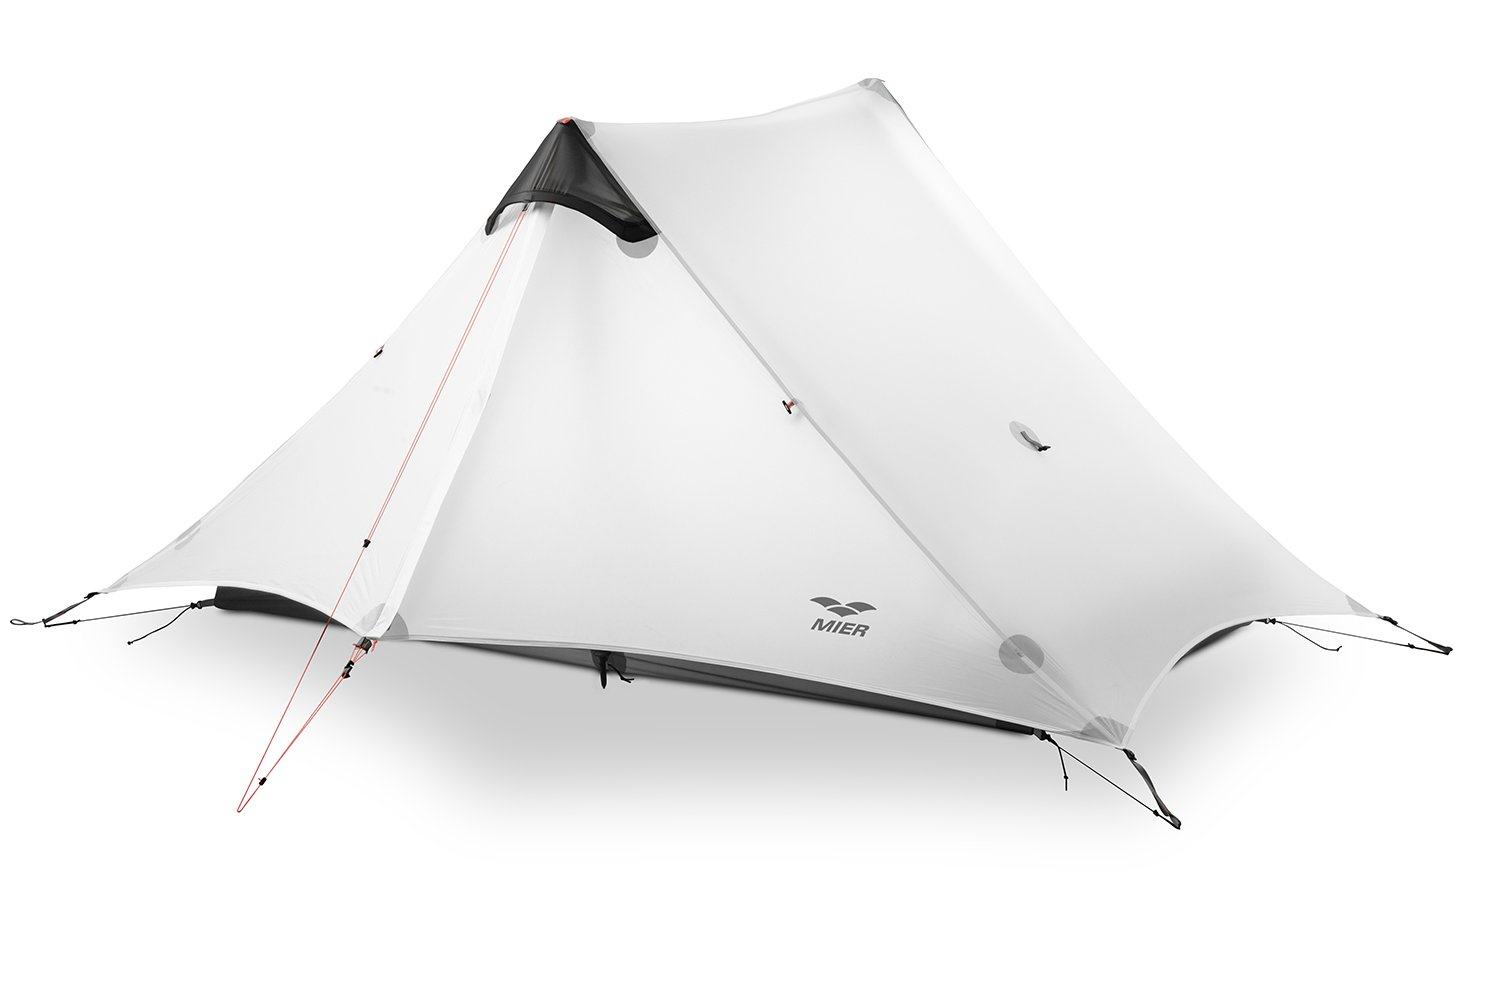 MIER Ultralight Tent 3-Season Backpacking Tent for 1-Person or 2-Person Camping, Trekking, Kayaking, Climbing, Hiking, (exclude Trekking Pole)